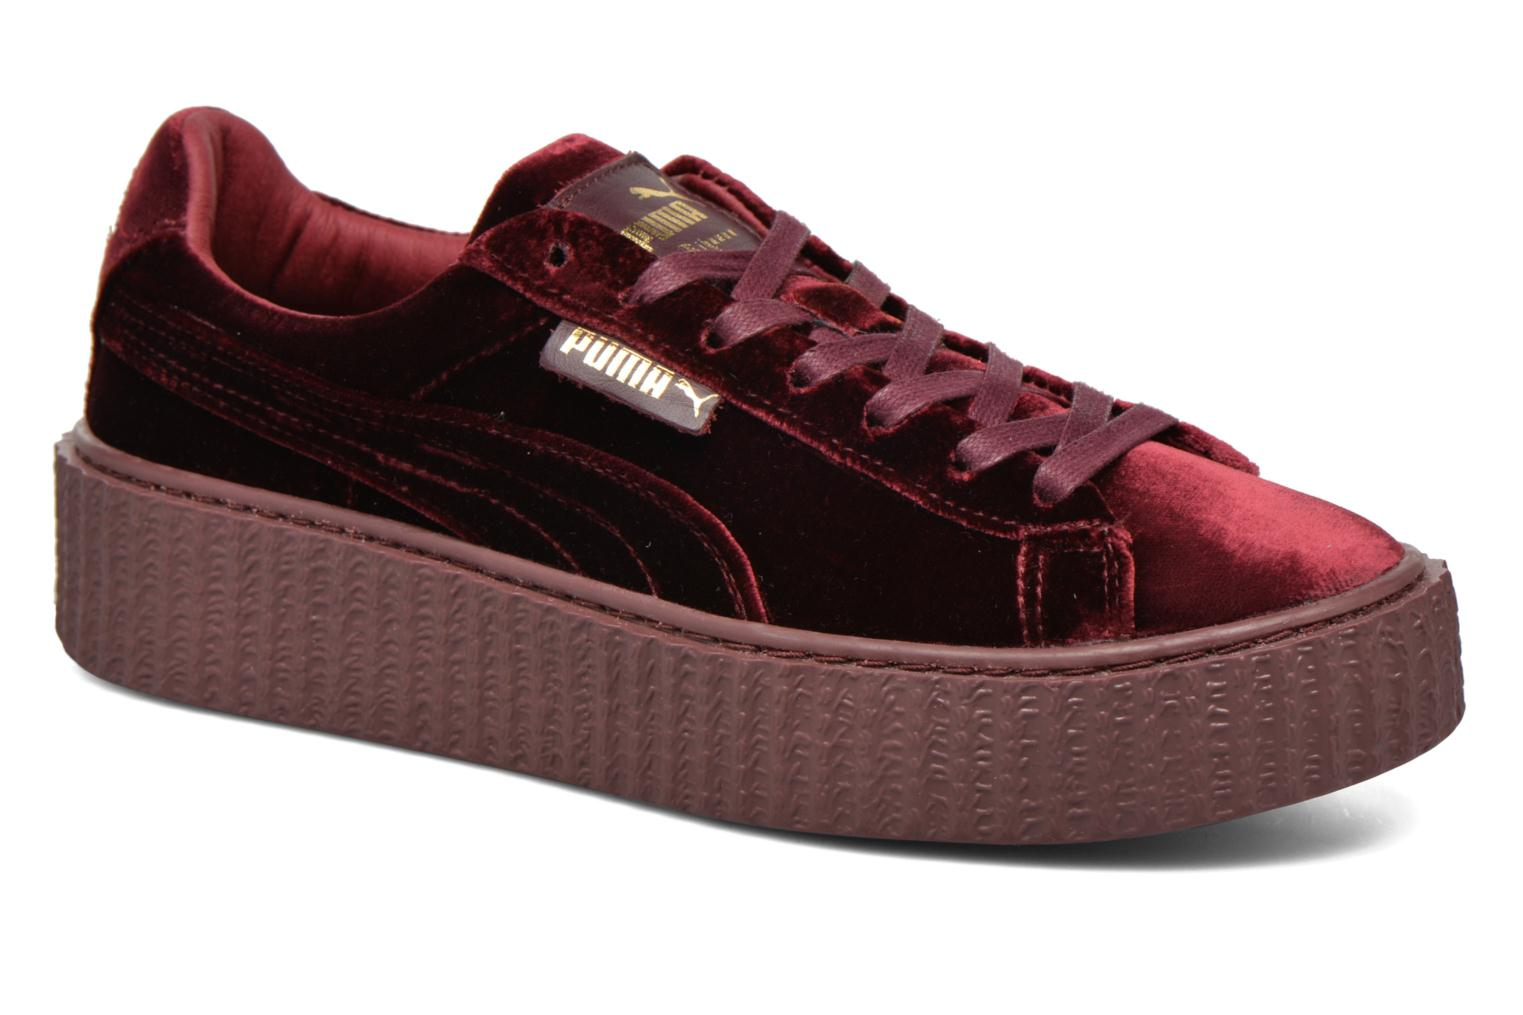 puma bordeaux creeper